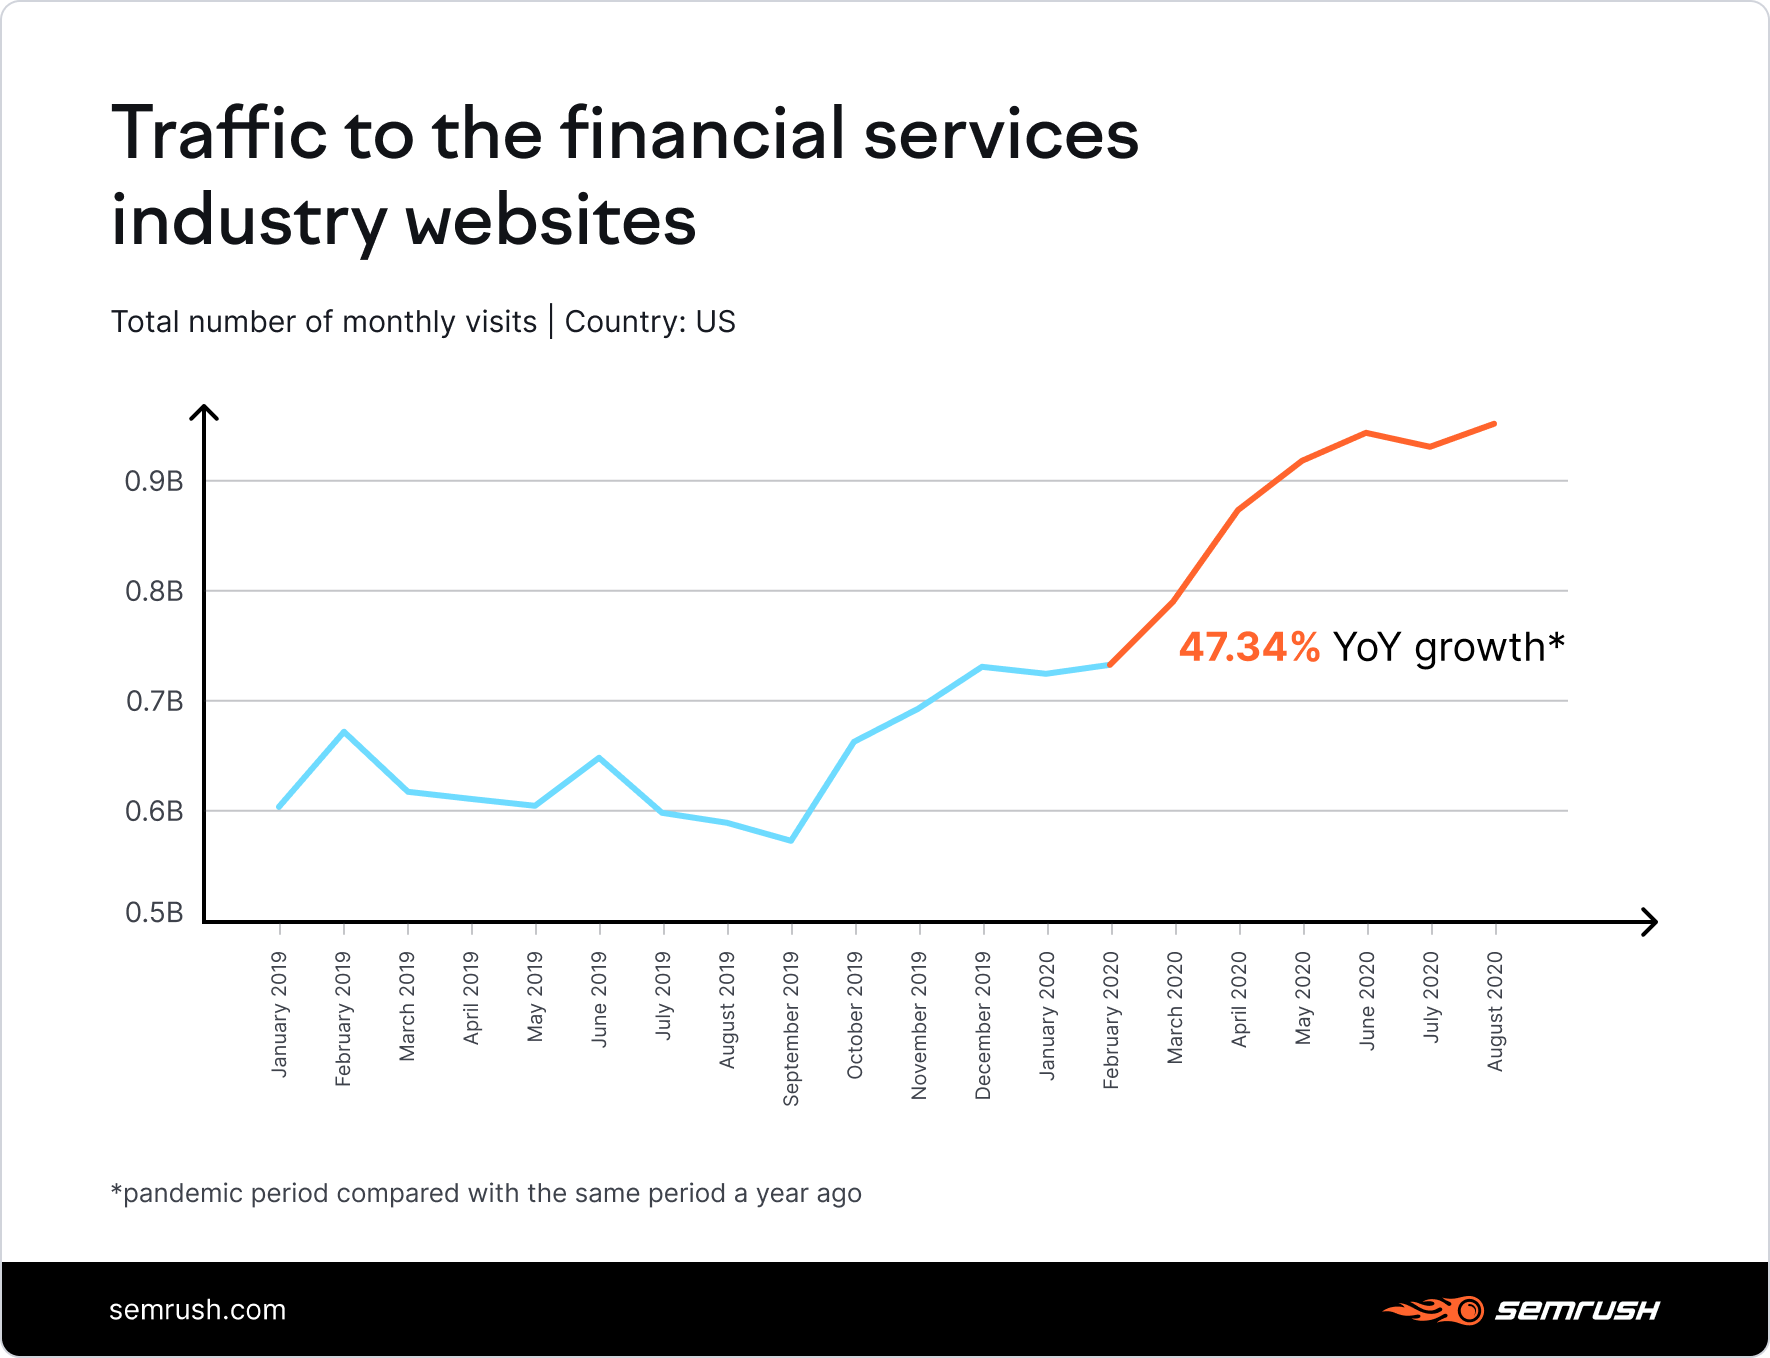 Traffic to the financial services industry websites